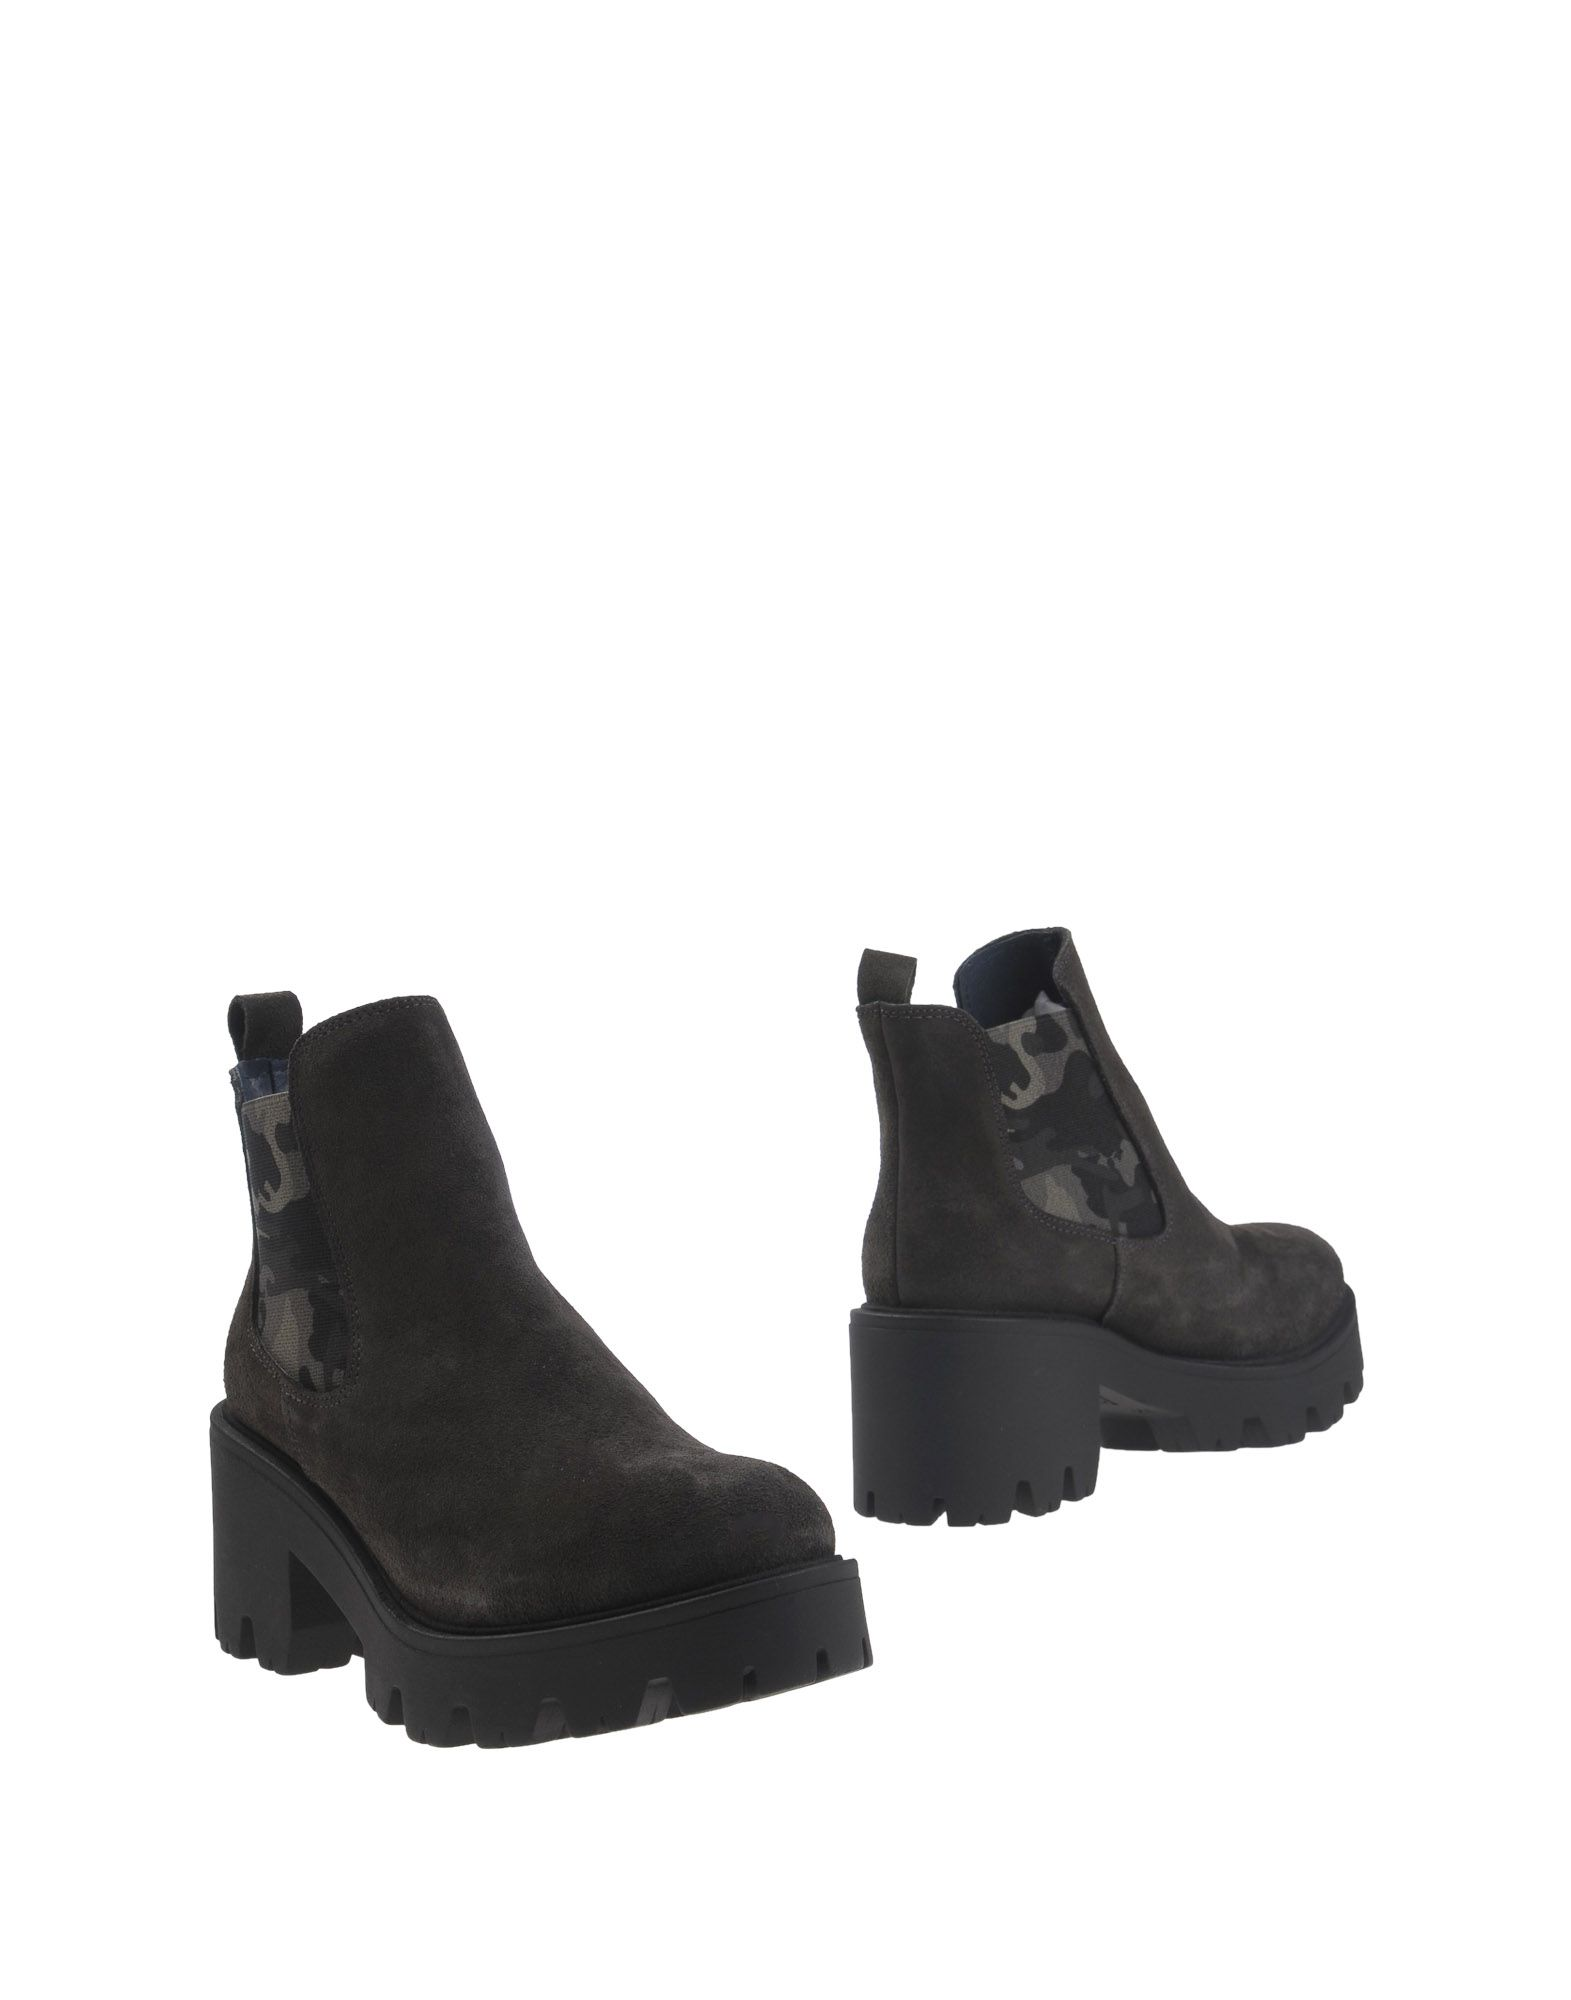 Bottine Claudia By Isaberi Femme - Bottines Claudia By Isaberi sur